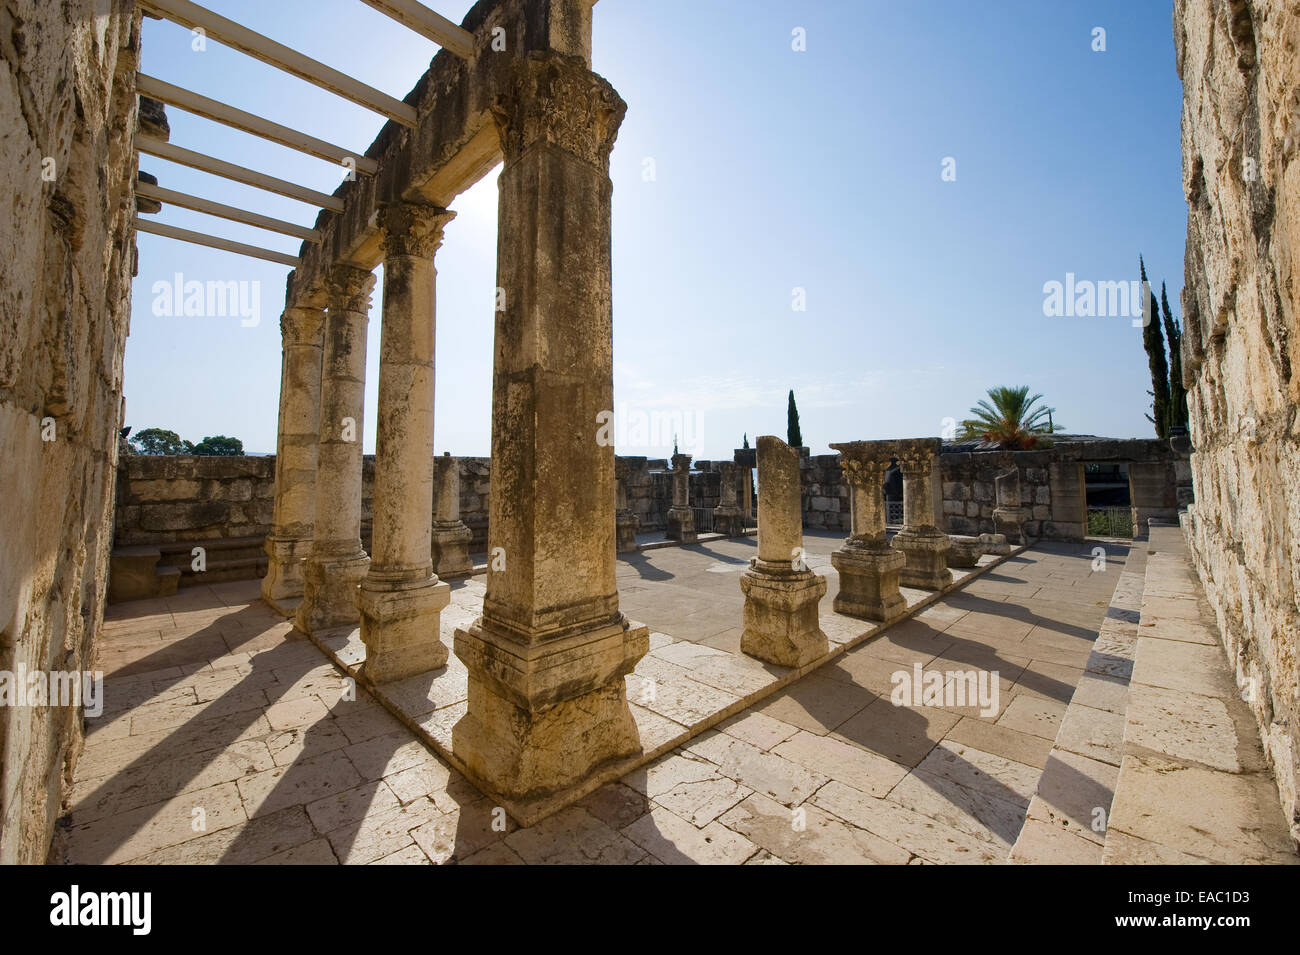 The ruins of the synagogue in the small town Capernaum on the coast of the lake of Galilee. Stock Photo